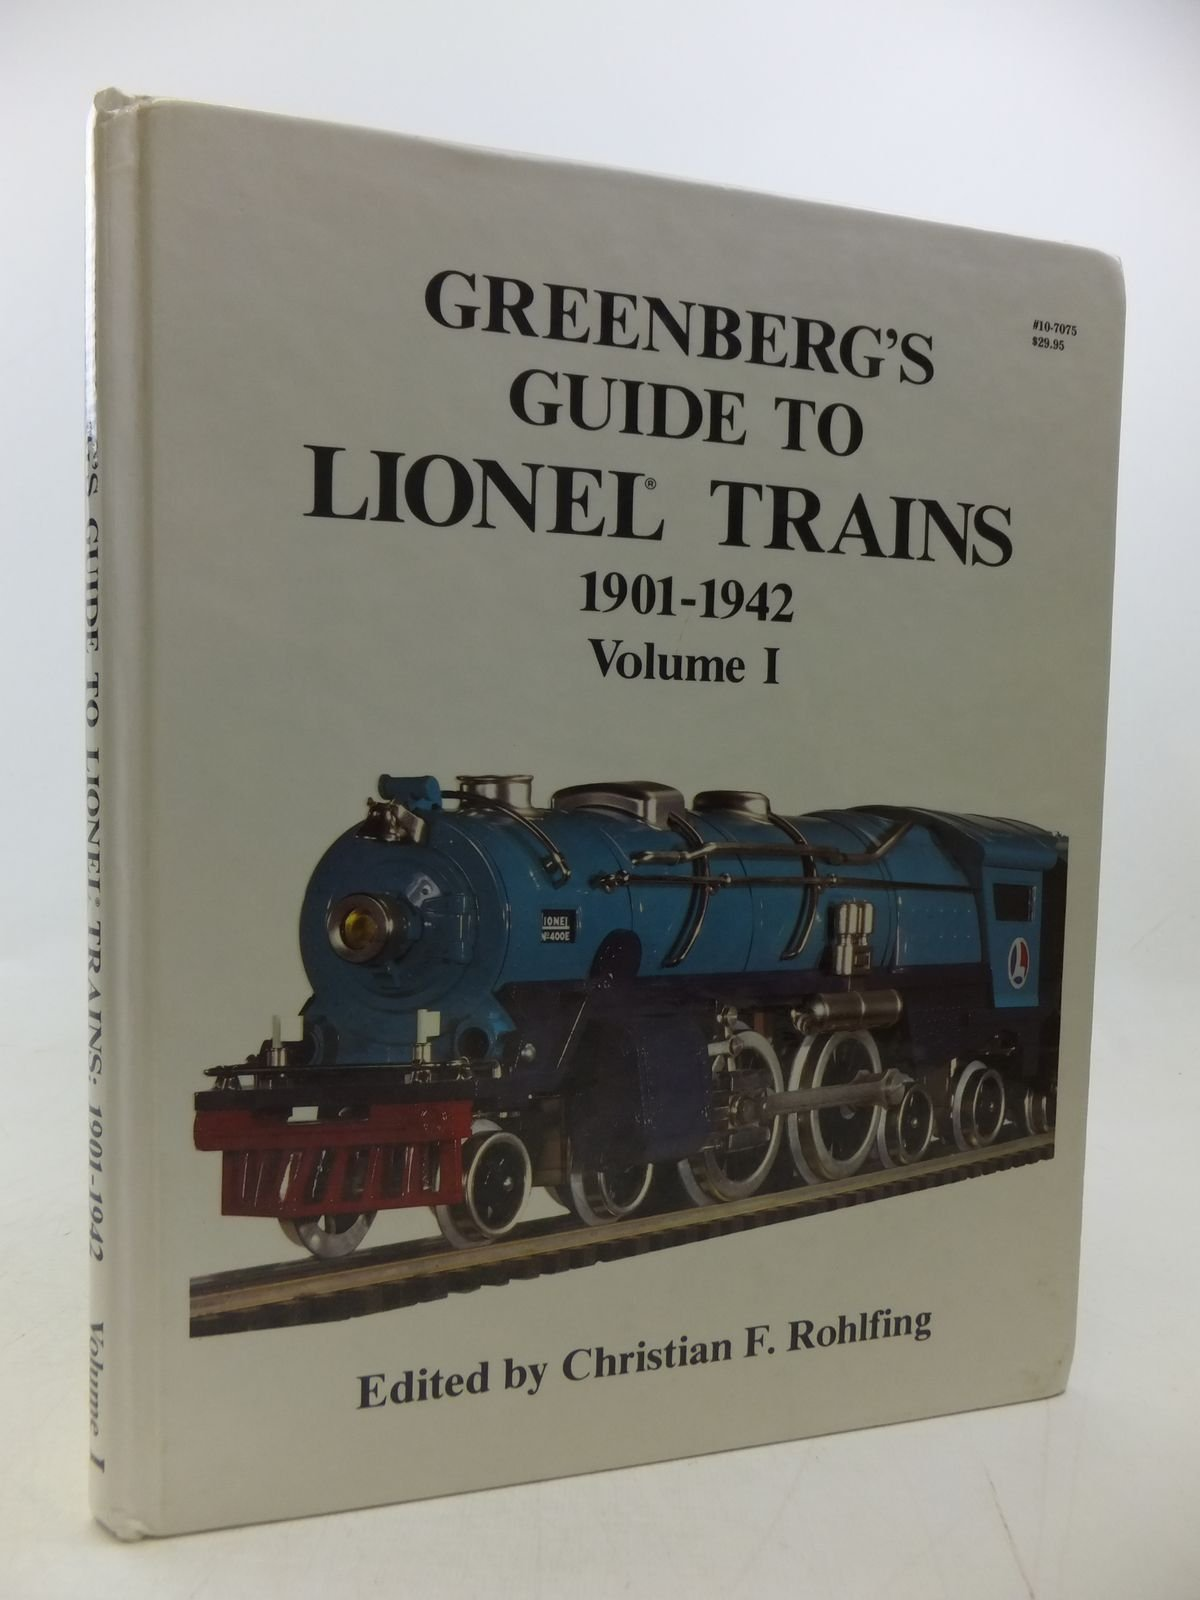 Greenberg's Guide to Lionel Trains 1901-1942 Volume I